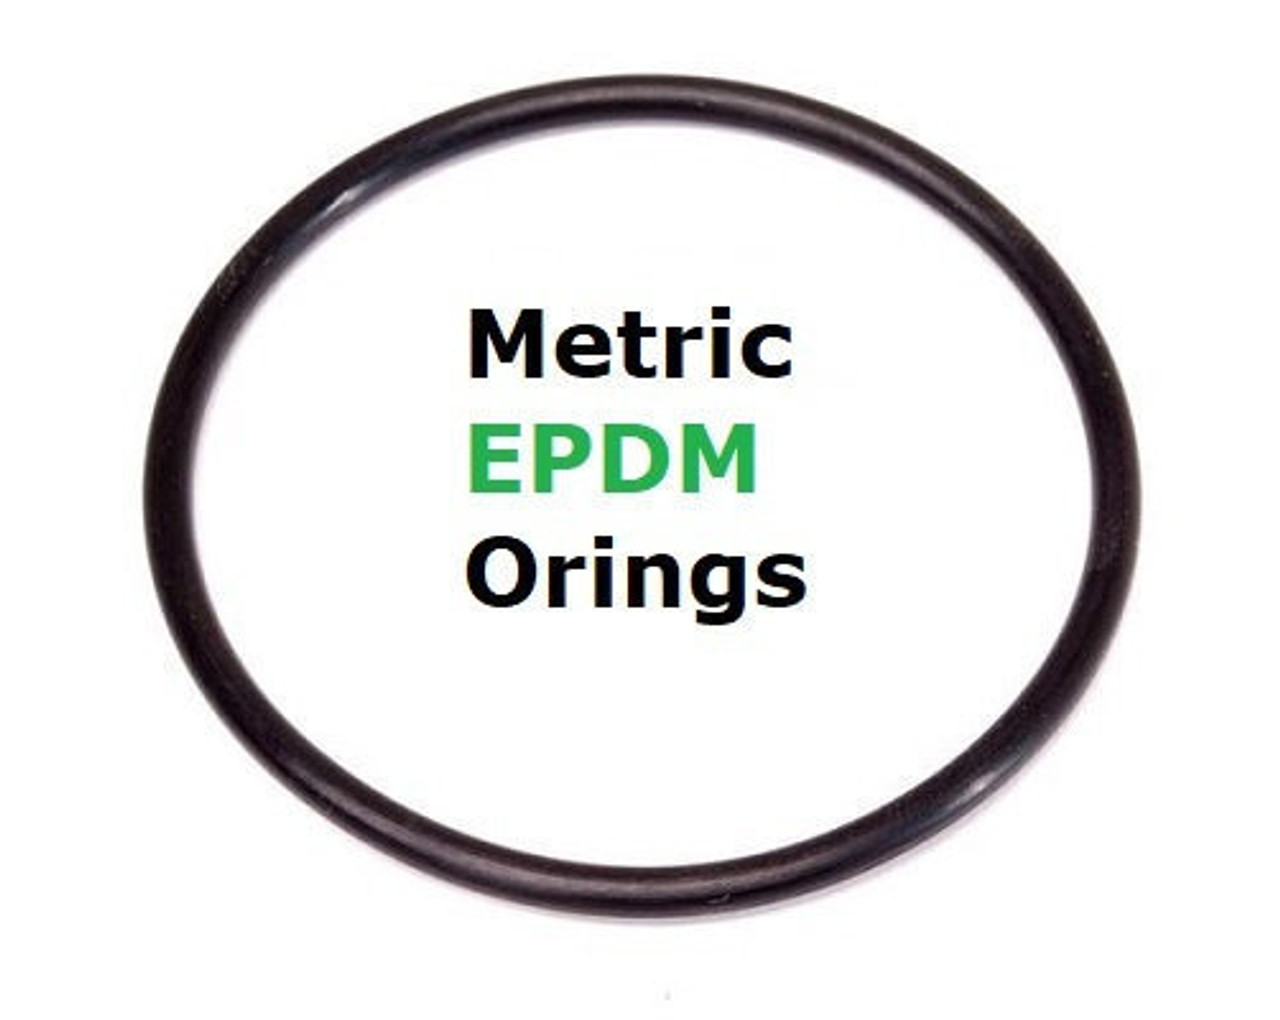 Metric EPDM 70  Orings 80 x 4mm  Price for 1 pc